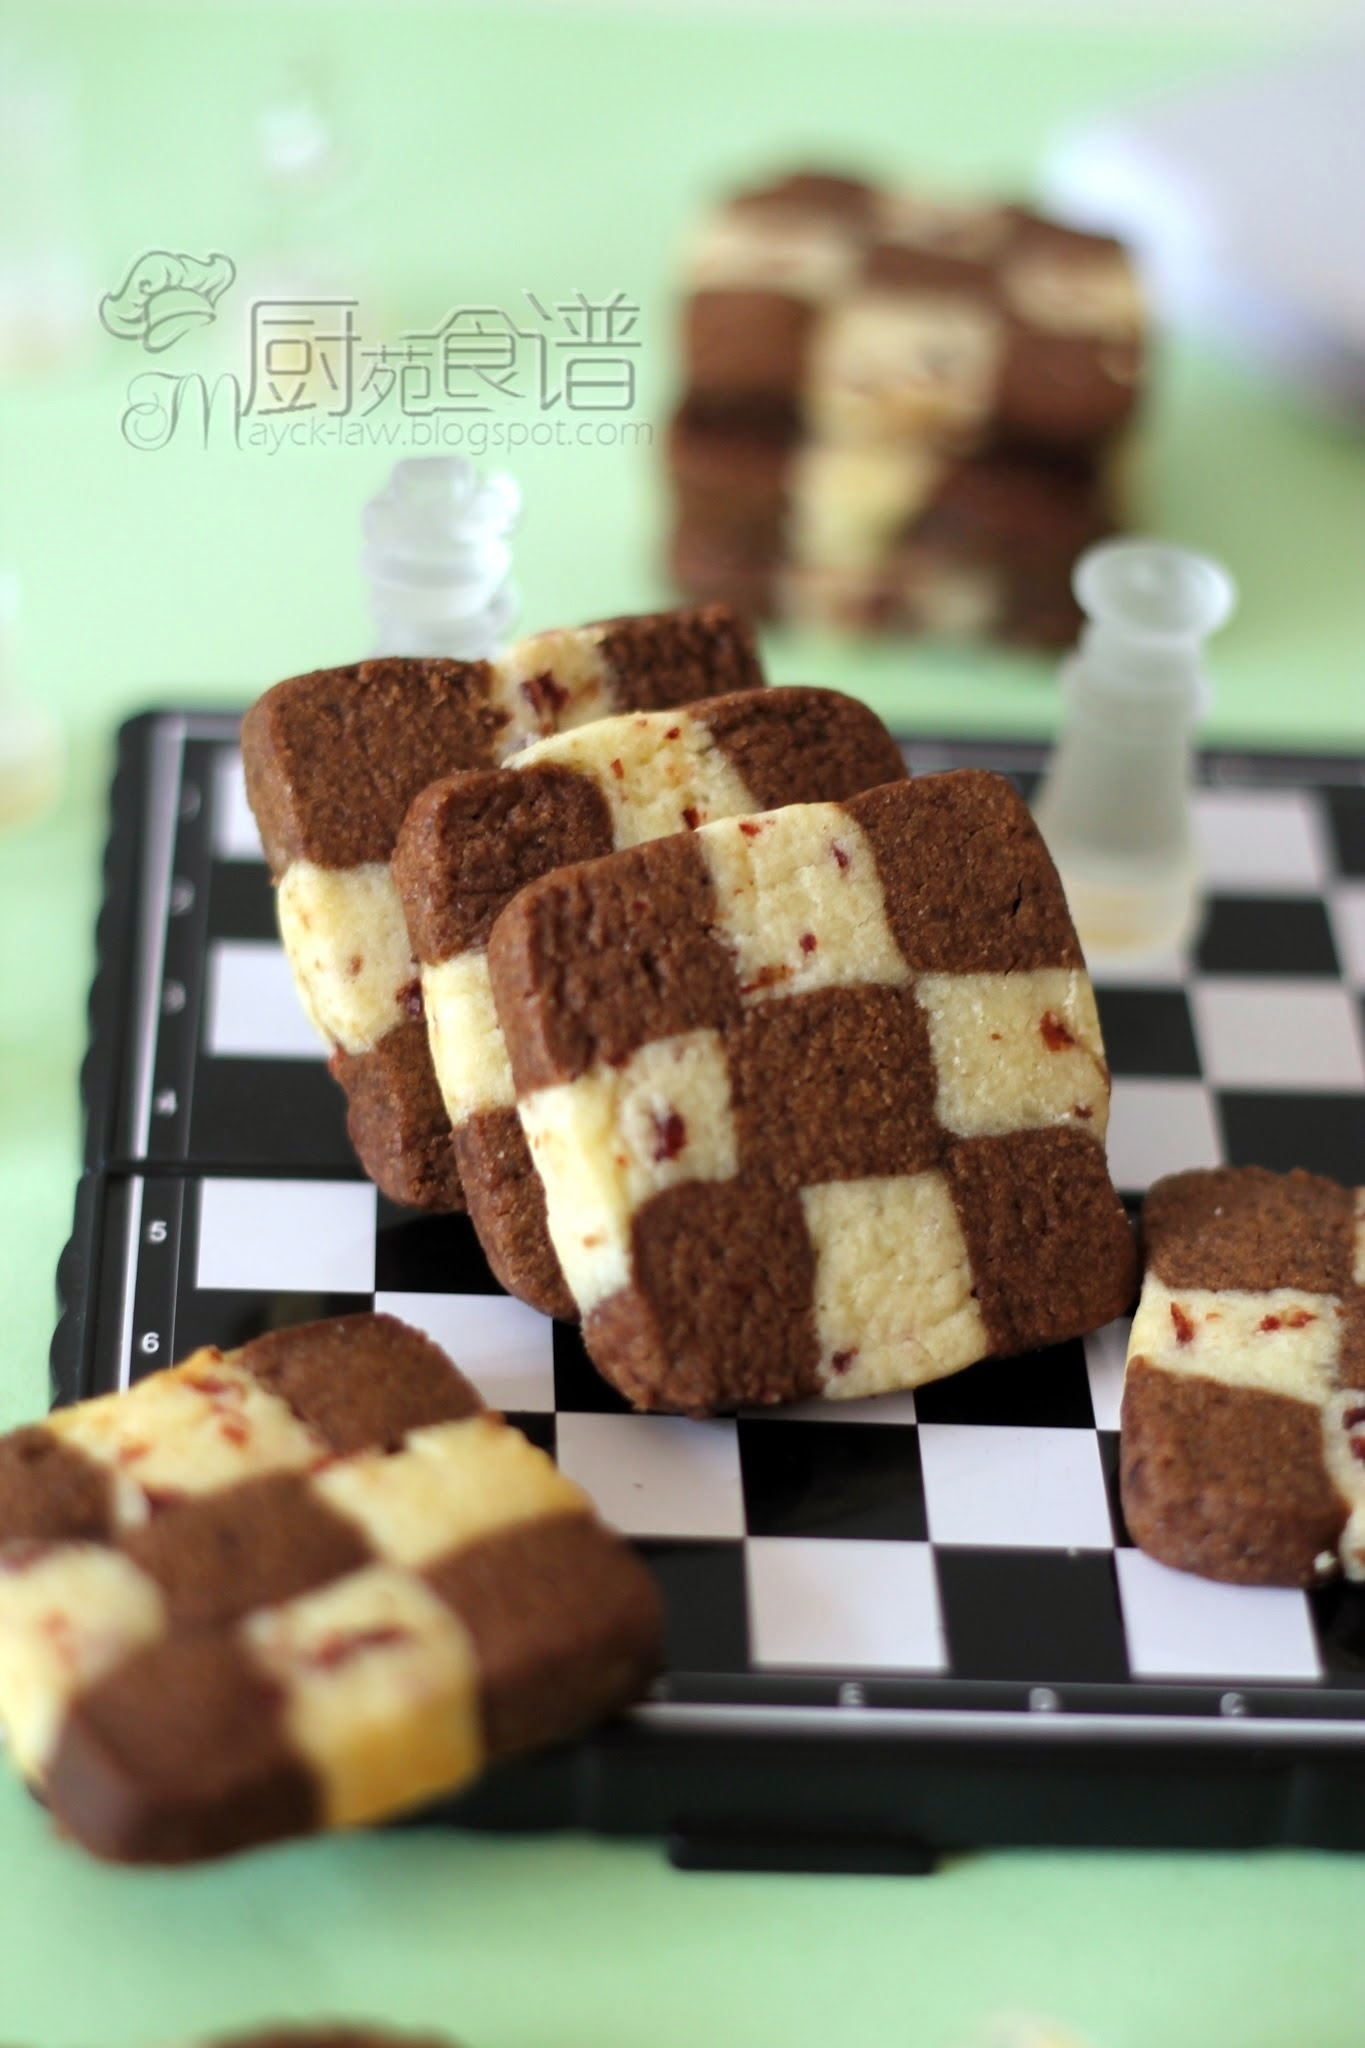 棋格饼干 (Chocolate and Cranberry Checkerboards Cookies)